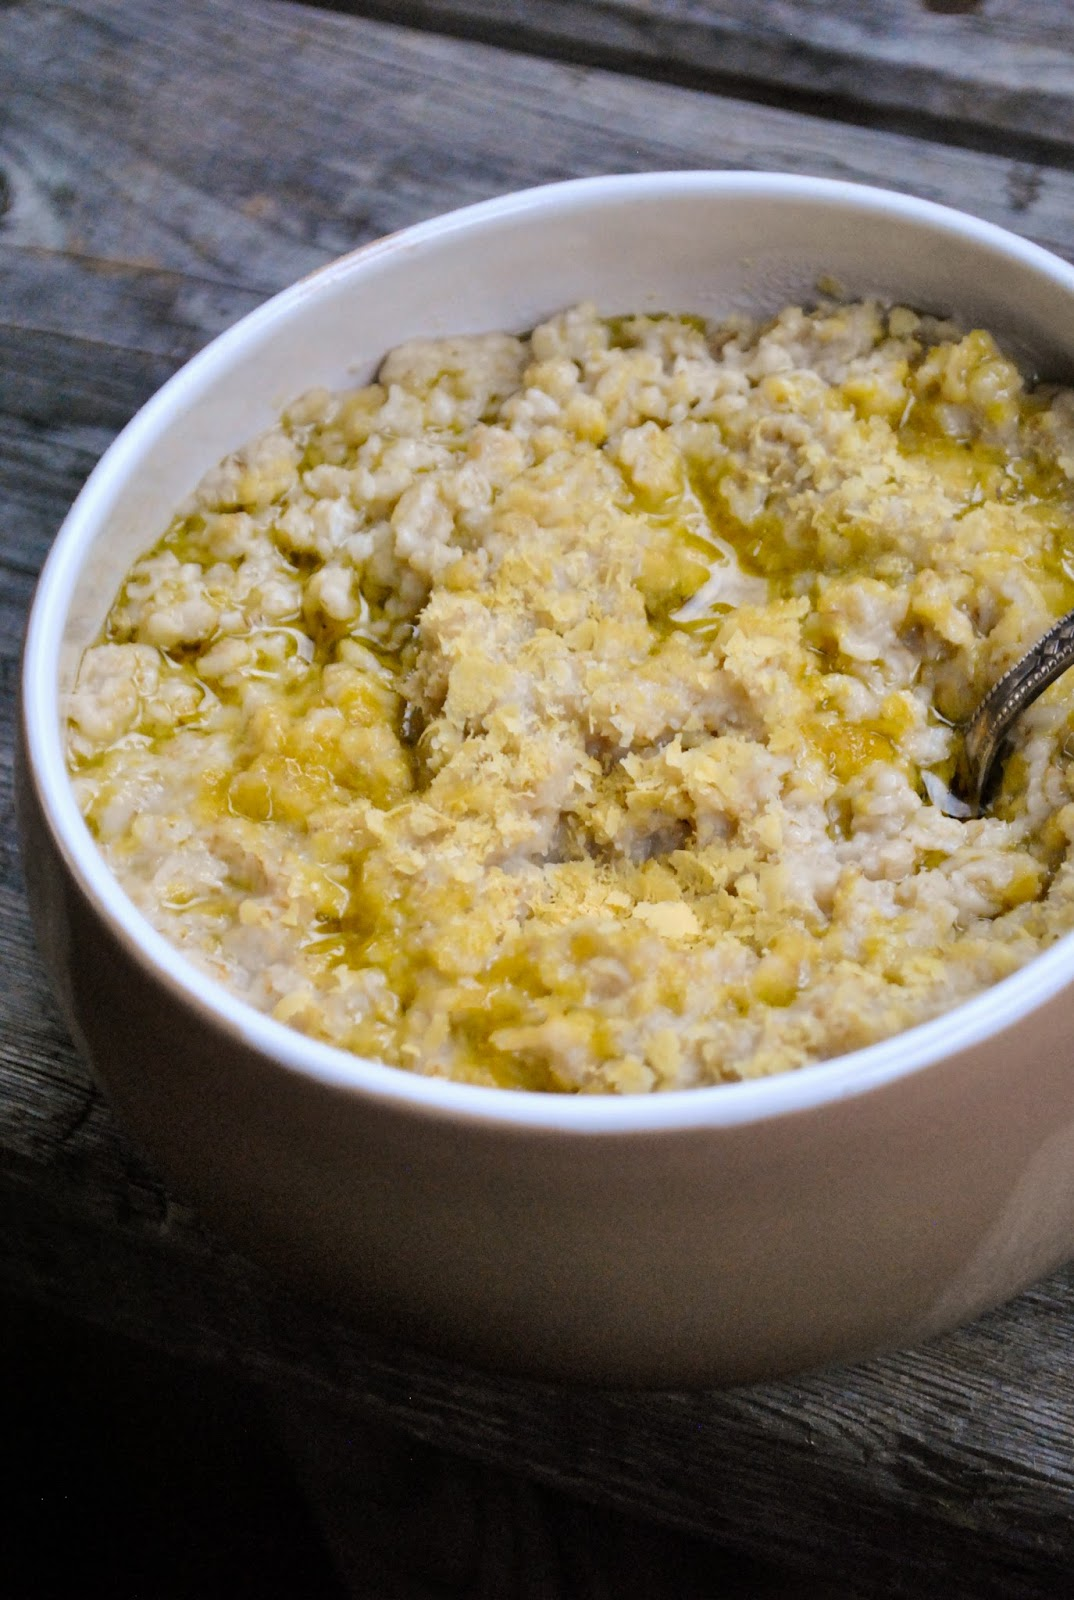 2 Porridge For Many Years My Favorite Morning Was Made With Buckwheat Flakes But Lately Ive Been Really Digging Good Old Oatmeal